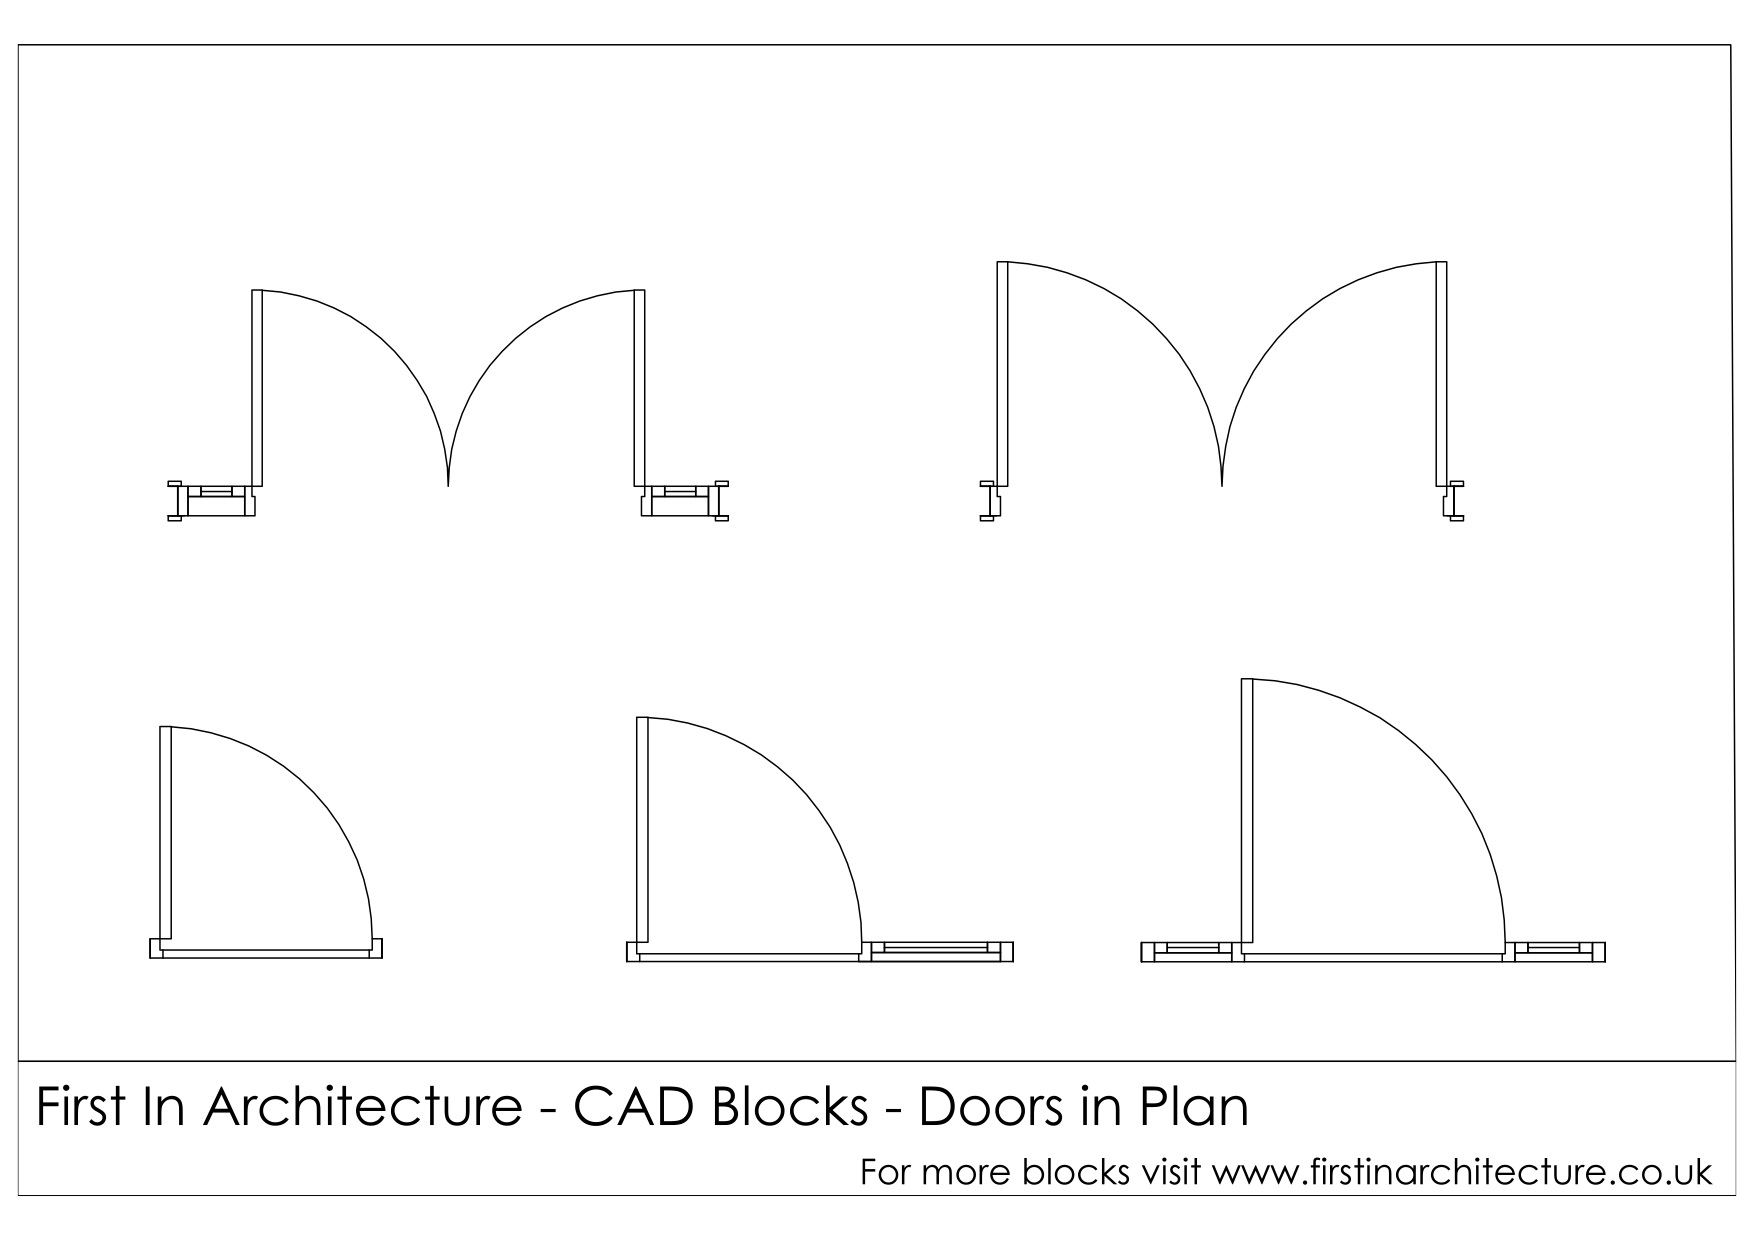 Le Meilleur Free Cad Blocks Door Elevationsplans Ce Mois Ci